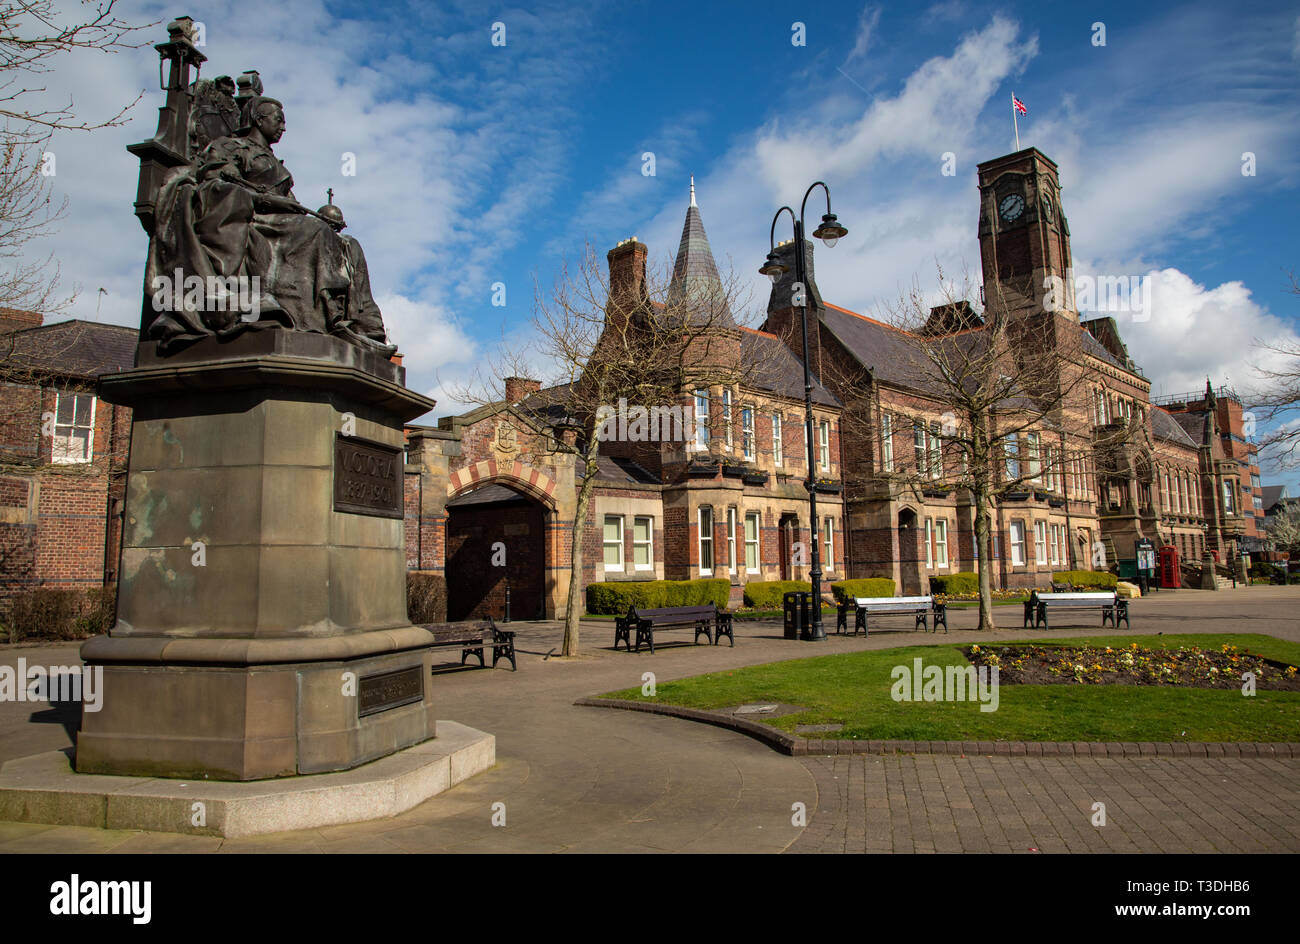 Statue of Queen Victoria on a throne and St Helens Town Hall in Victoria Square St Helens Merseyside England March 2019 Stock Photo